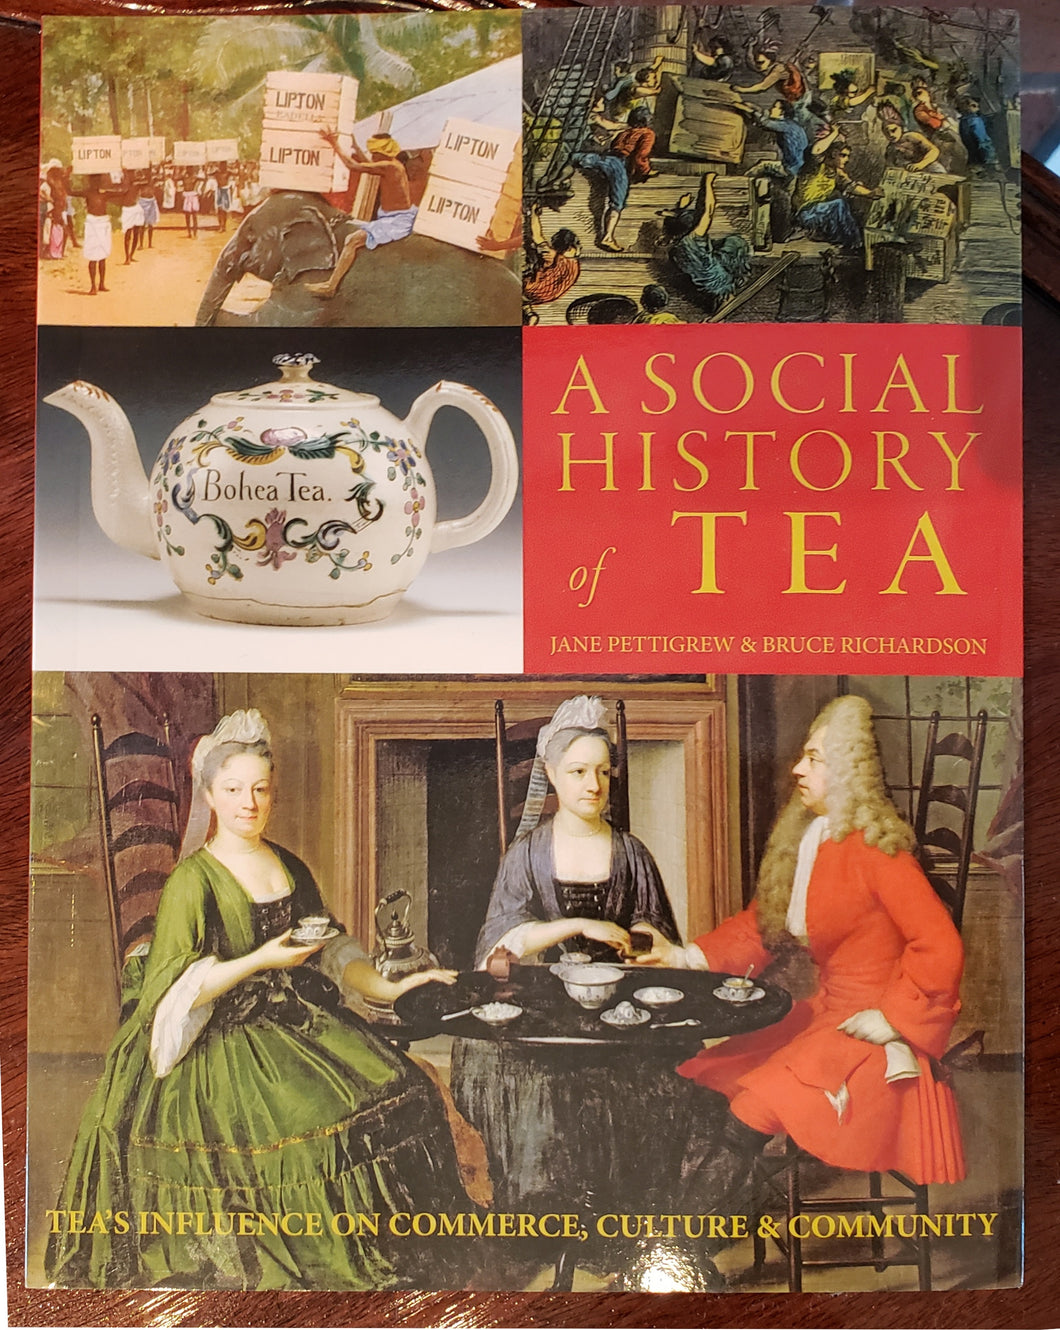 A Social History of Tea - by Jane Pettigrew & Bruce Richardson